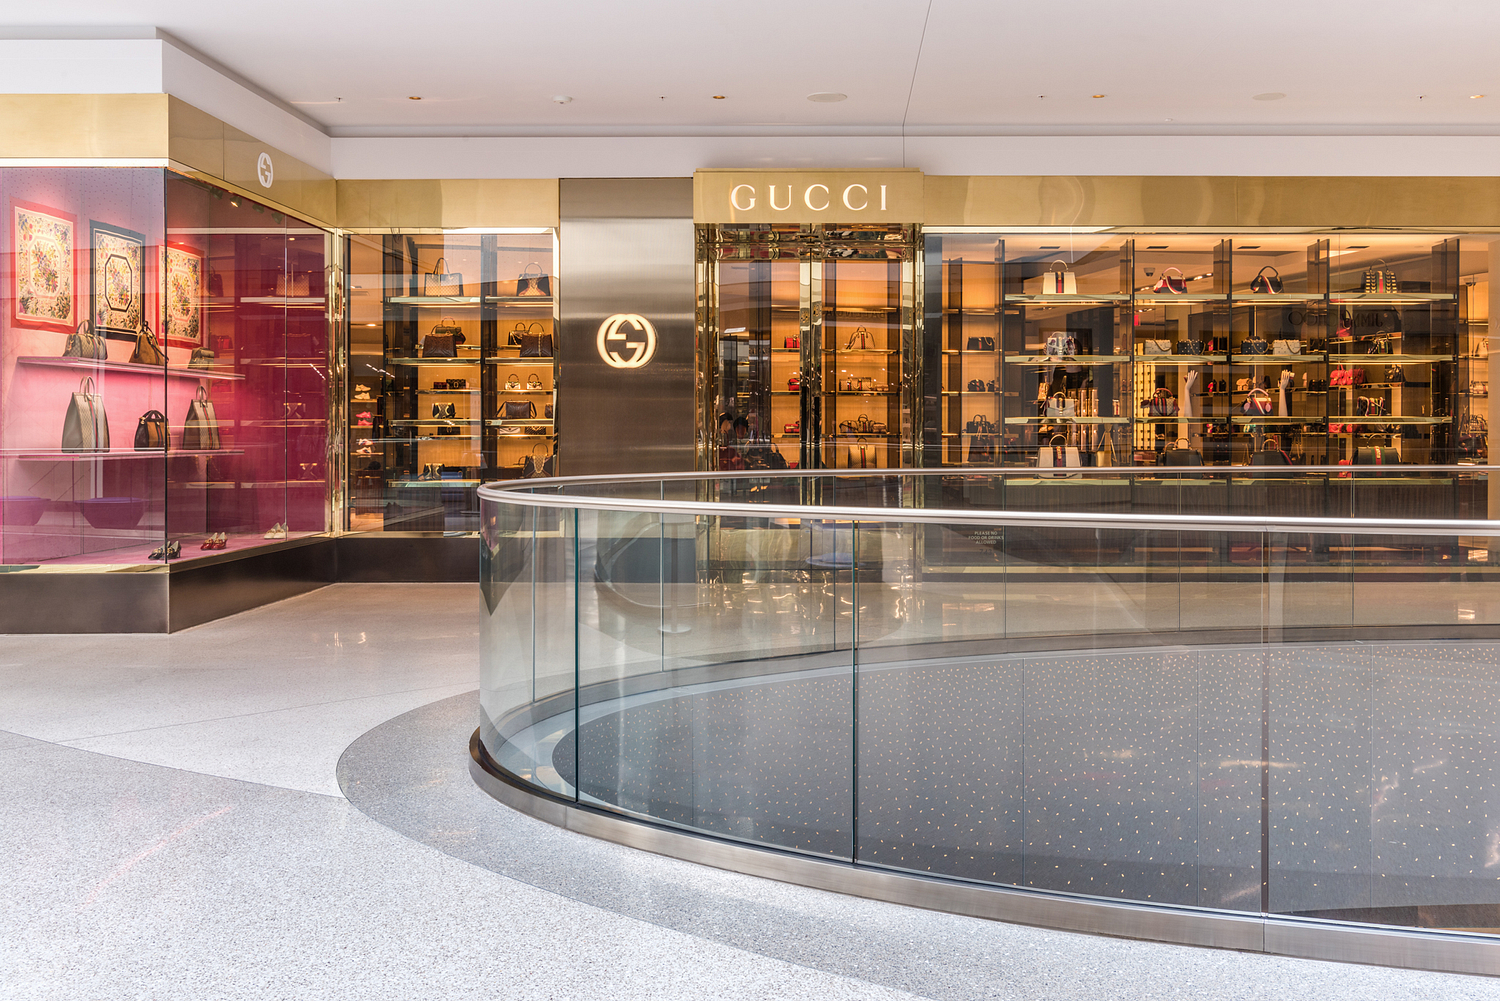 Gucci store front, Beverly Center, Los Angeles